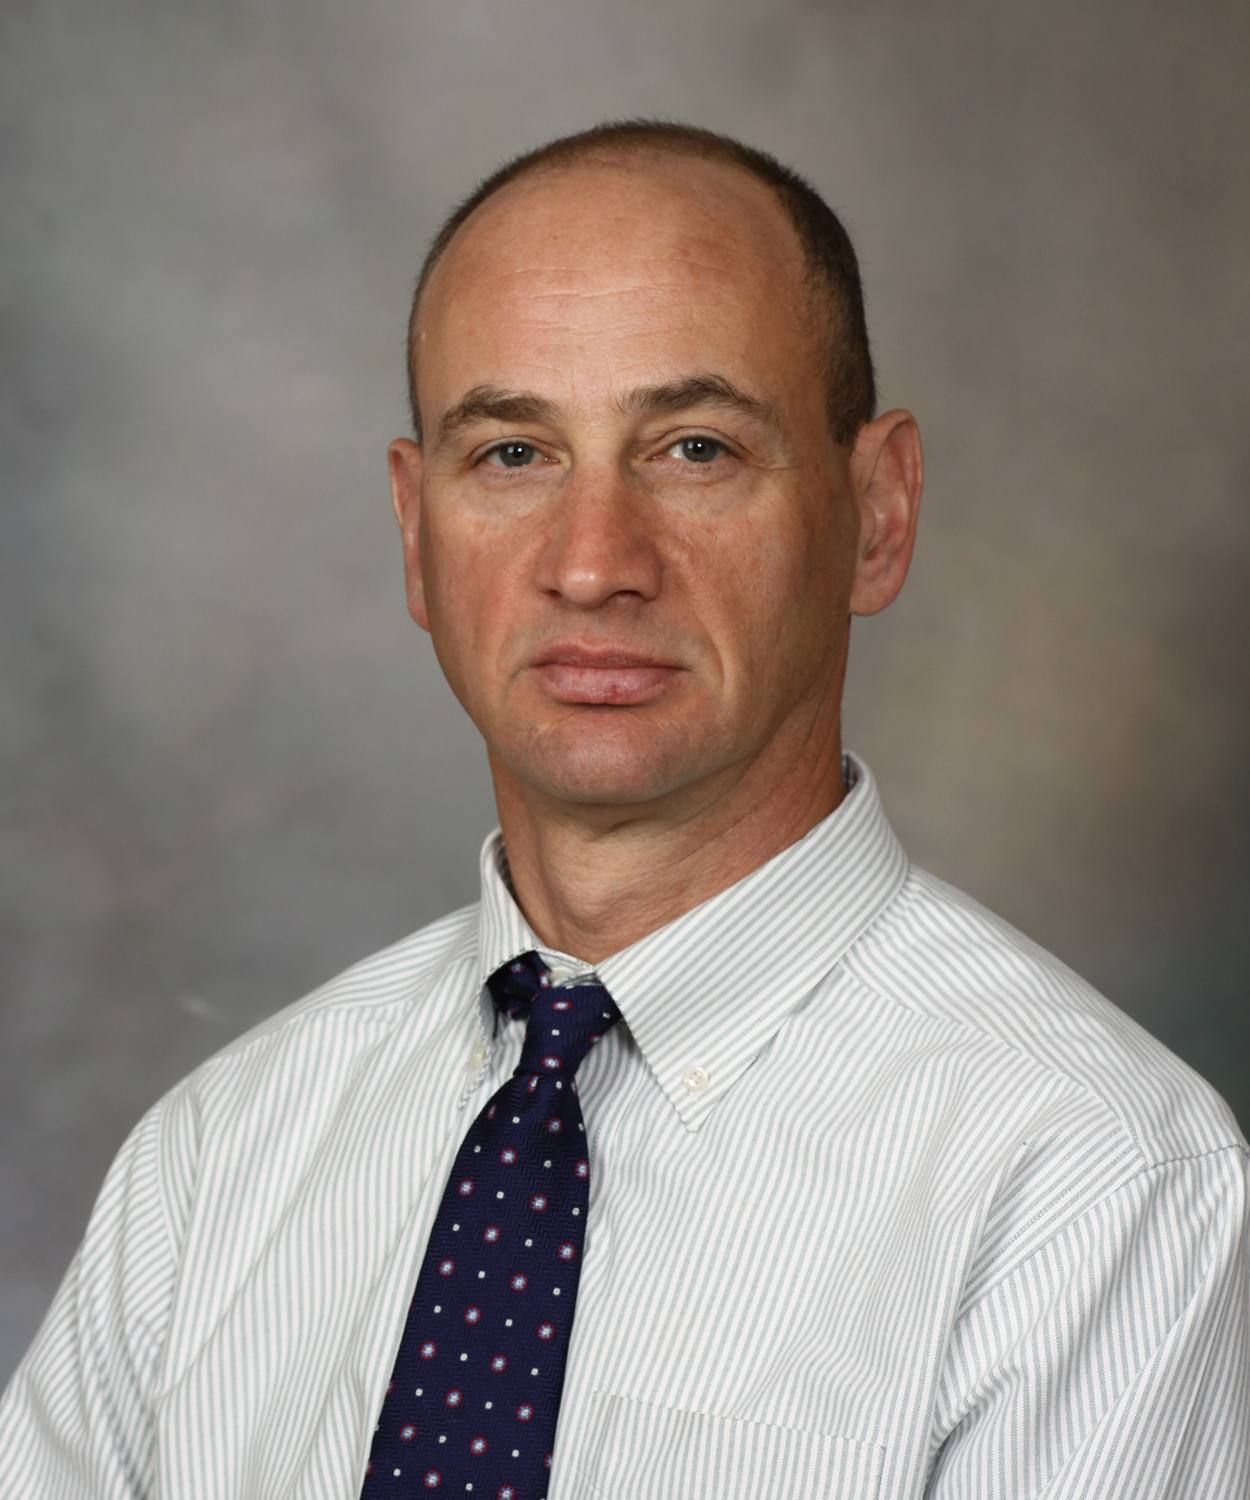 Photo of Andrew Folpe, M.D.